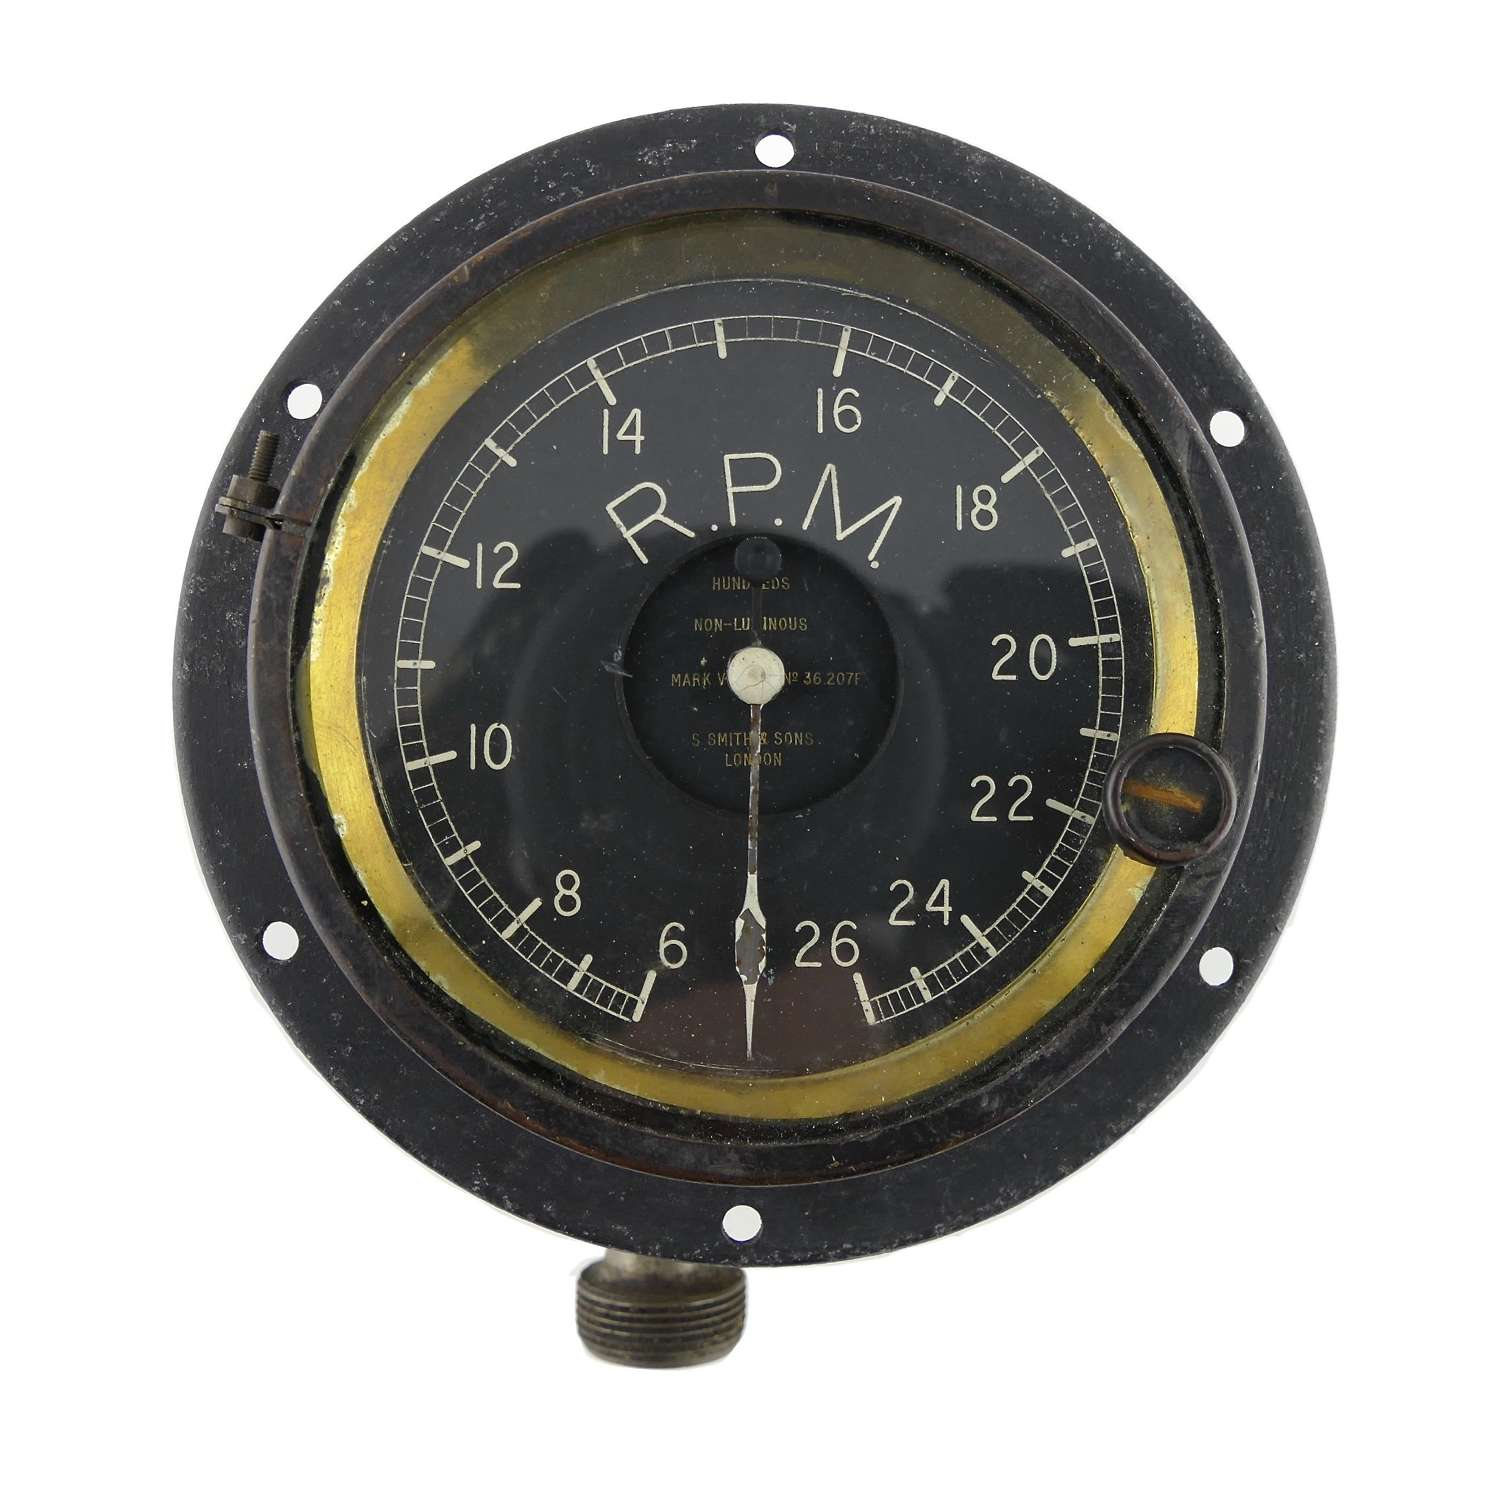 WW1 RFC aircraft Rev counter